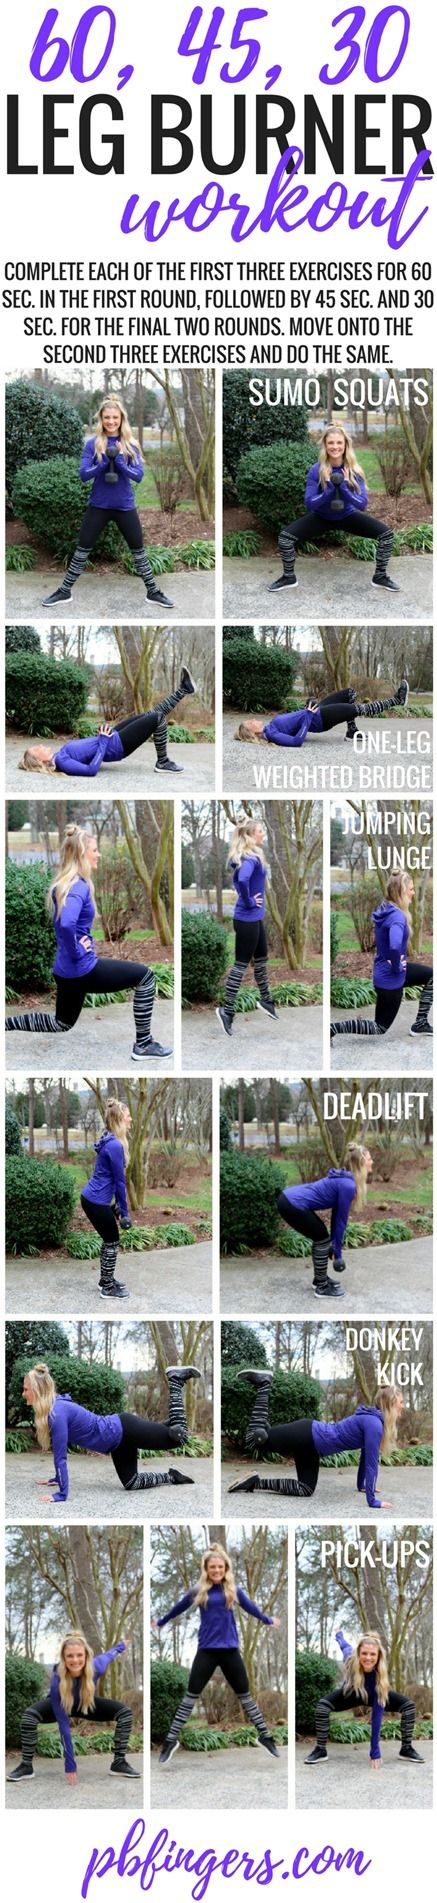 60, 45, 30 Leg Burner Workout http://www.pbfingers.com/60-45-30-leg-burner-workout/ This one is a killer but SO awesome. Bonus: You get the hardest part of the workout out of the way FIRST!